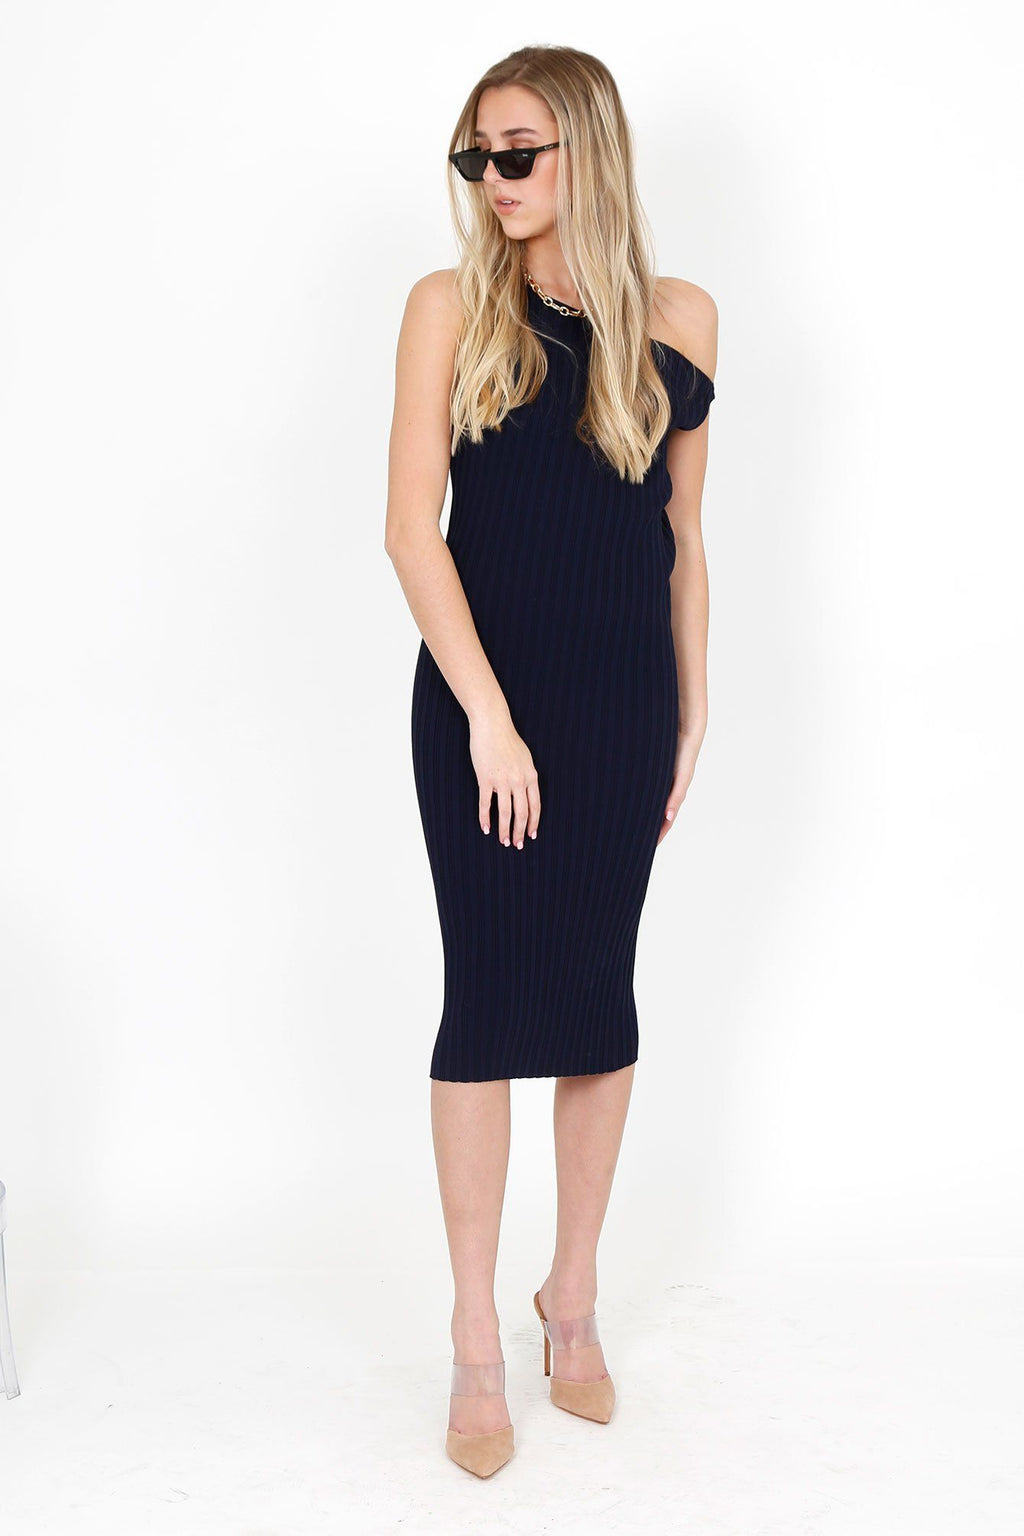 MICHELLE MASON | Asym Rib Dress - Midnight Rib Viscose